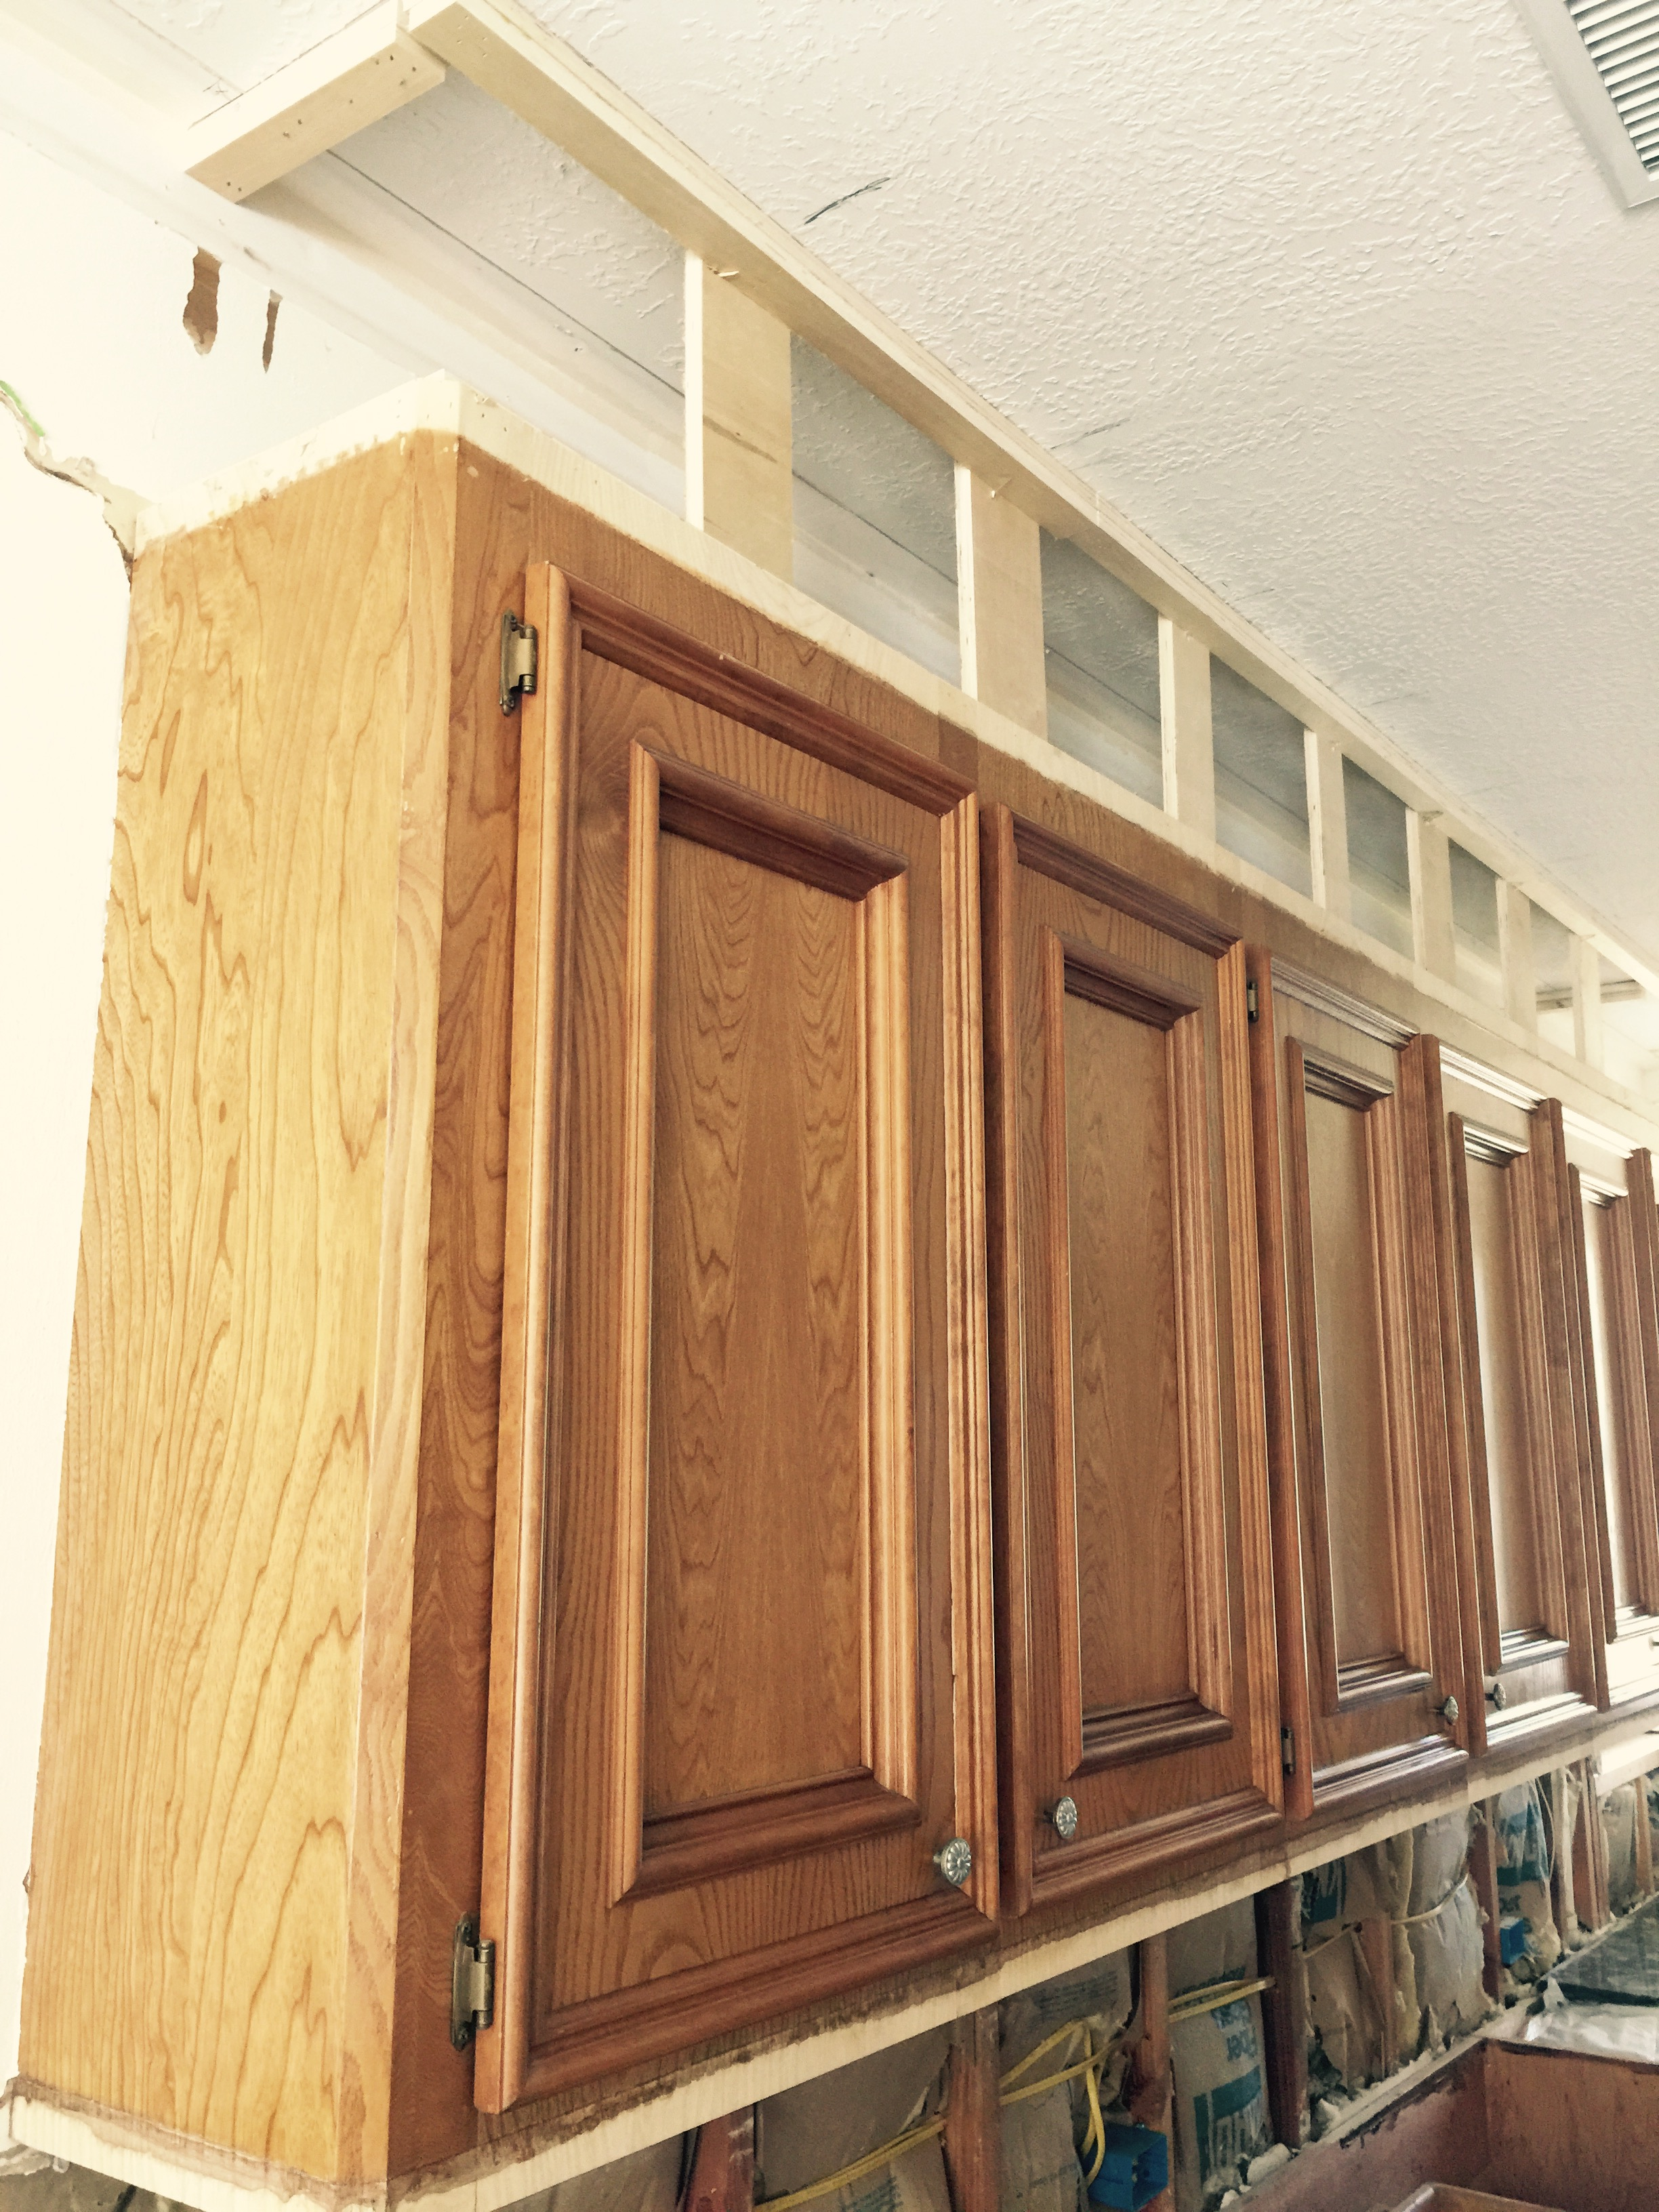 Cabinets under construction